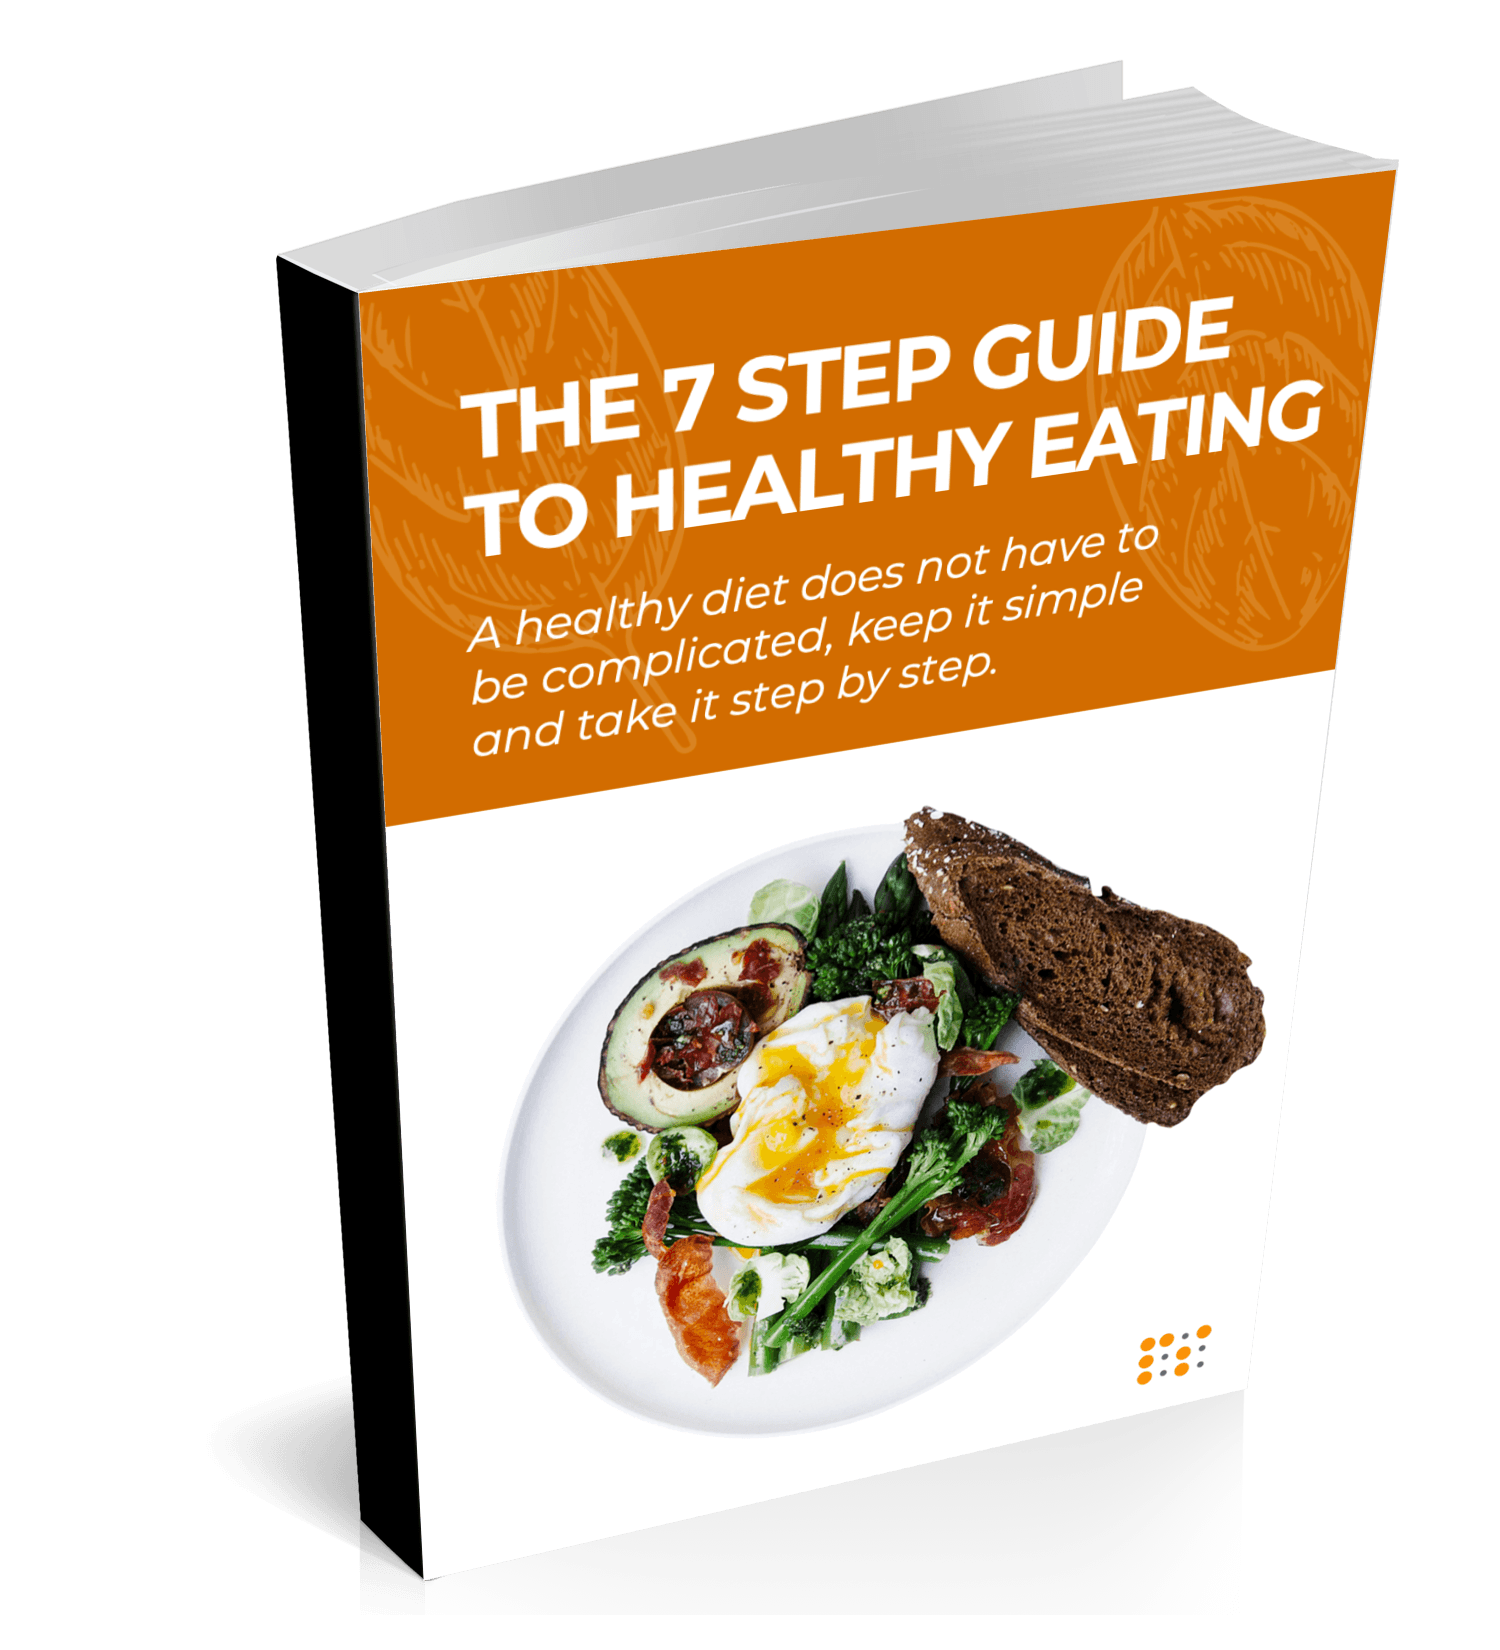 decd guide for healthy eating